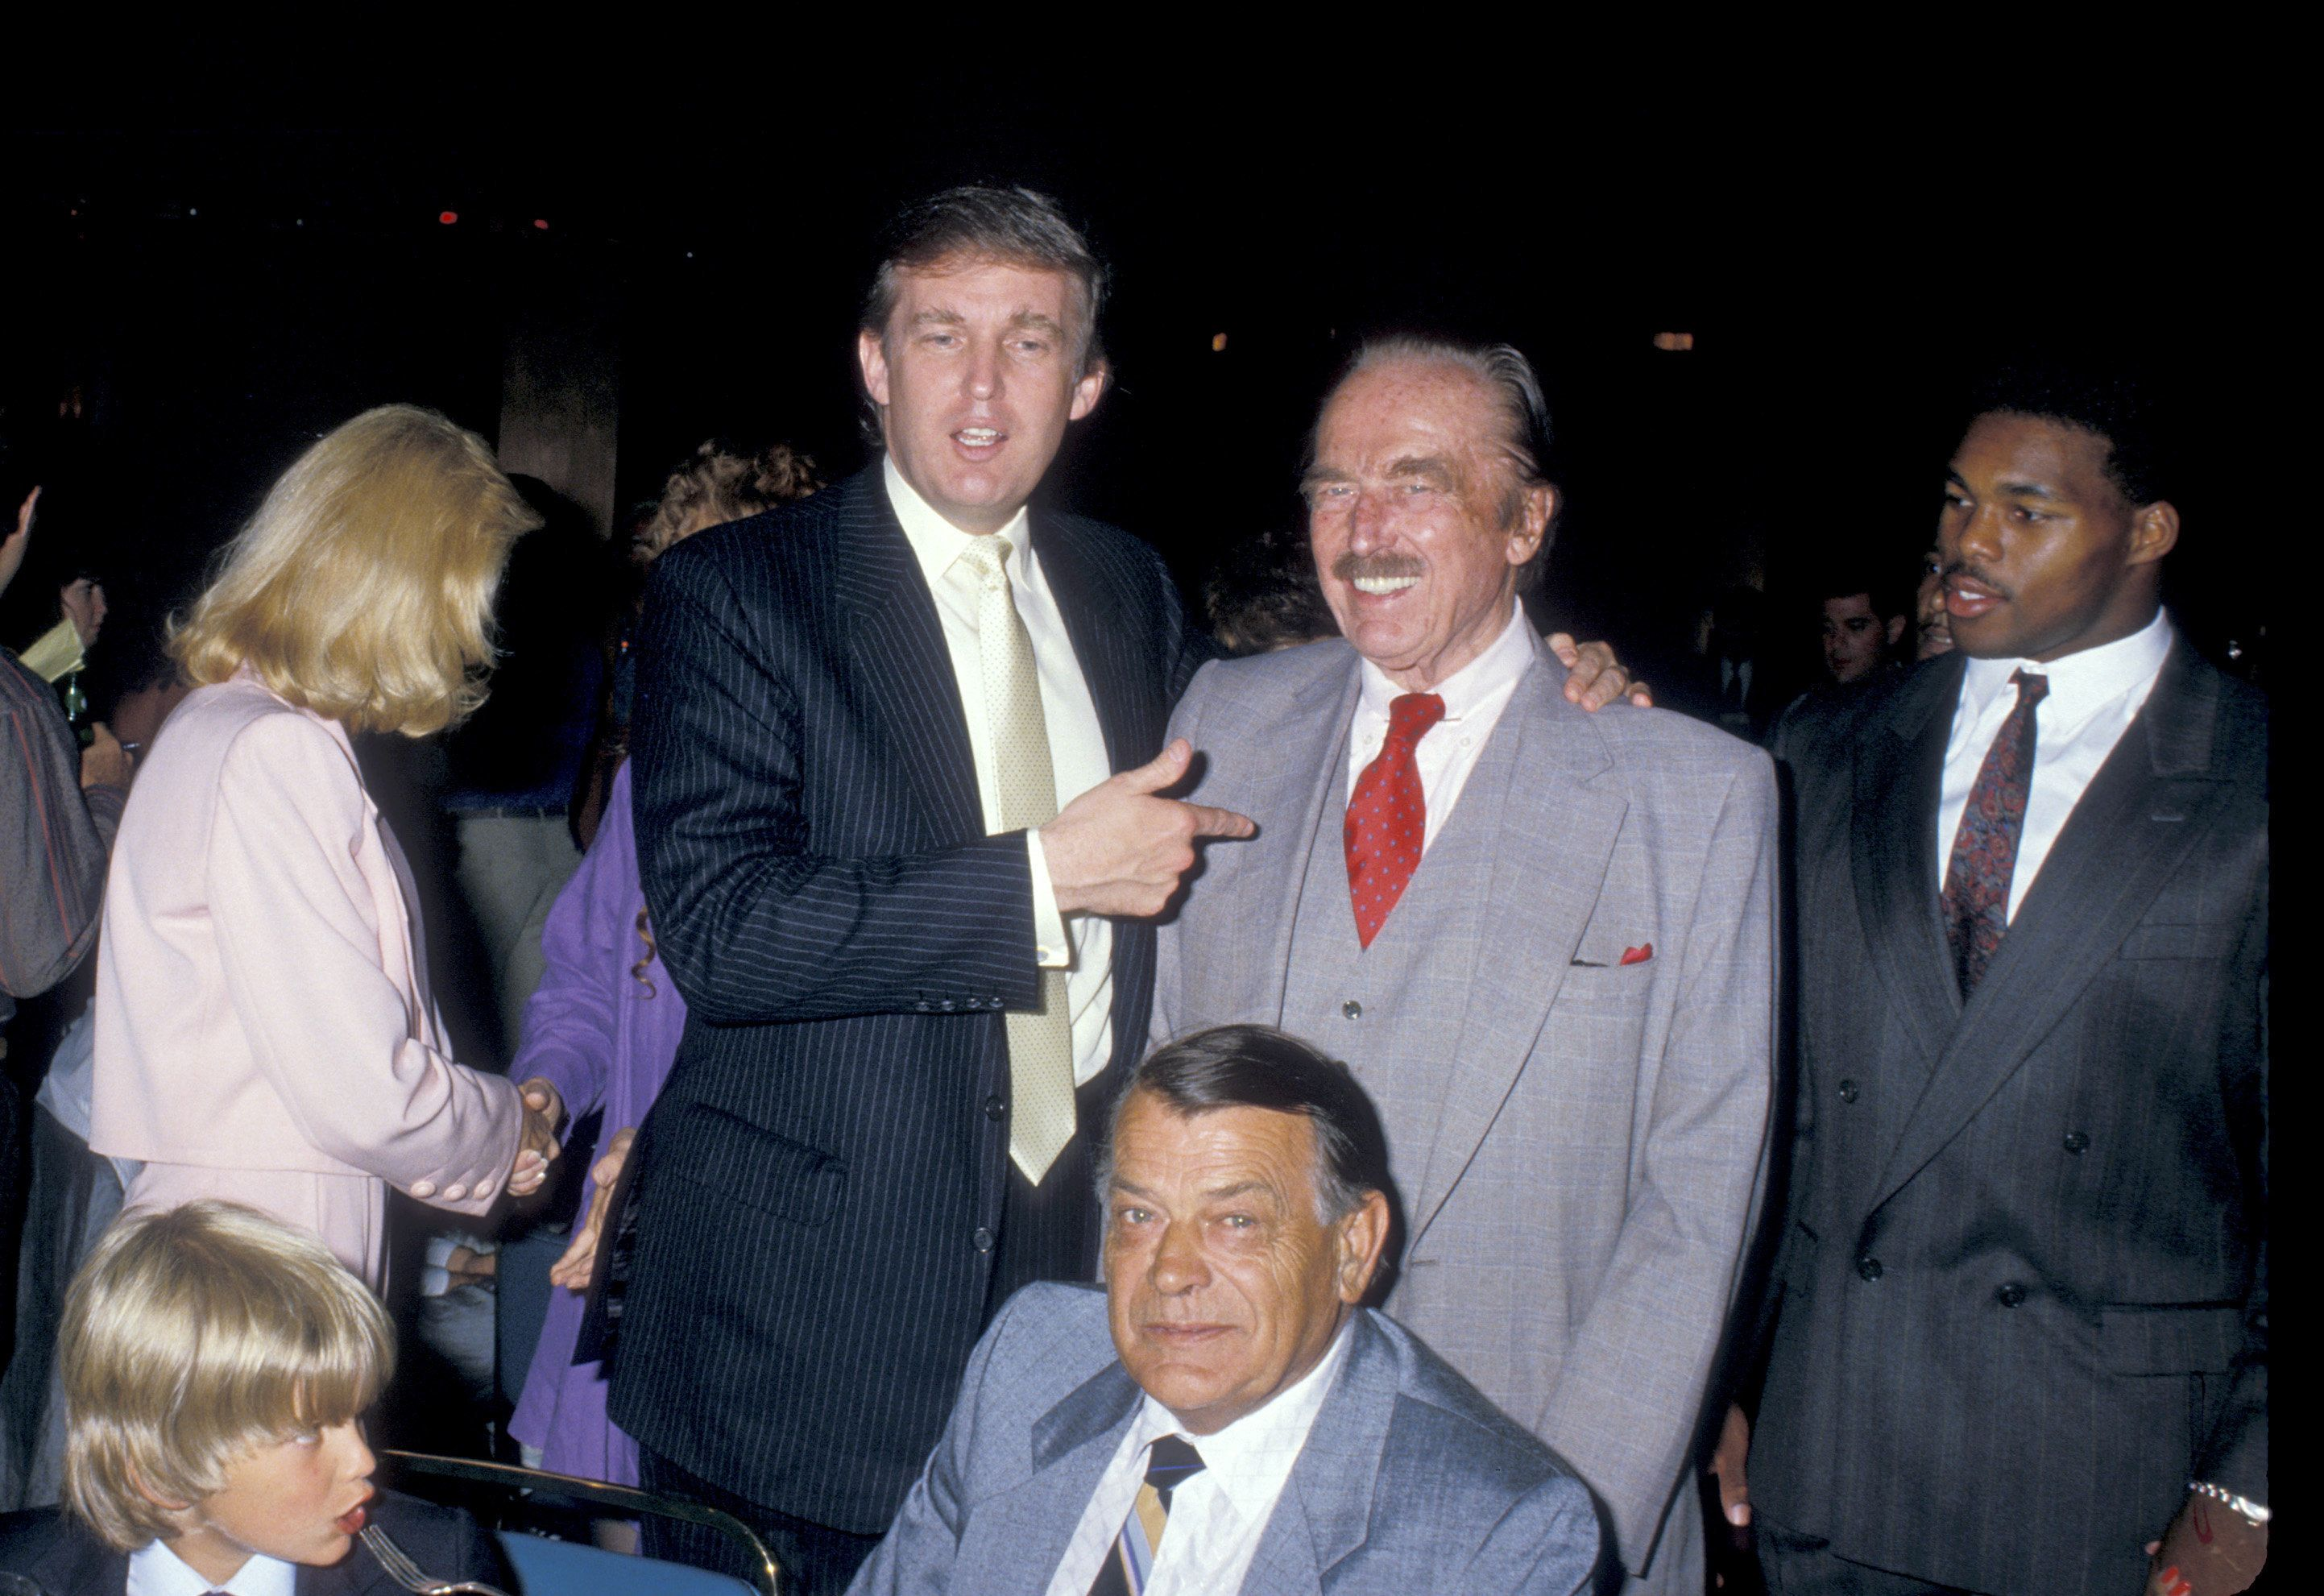 In this undated photo, Donald Trump (left) poses with his father, Fred Trump. According to a bombshell New York Times report,